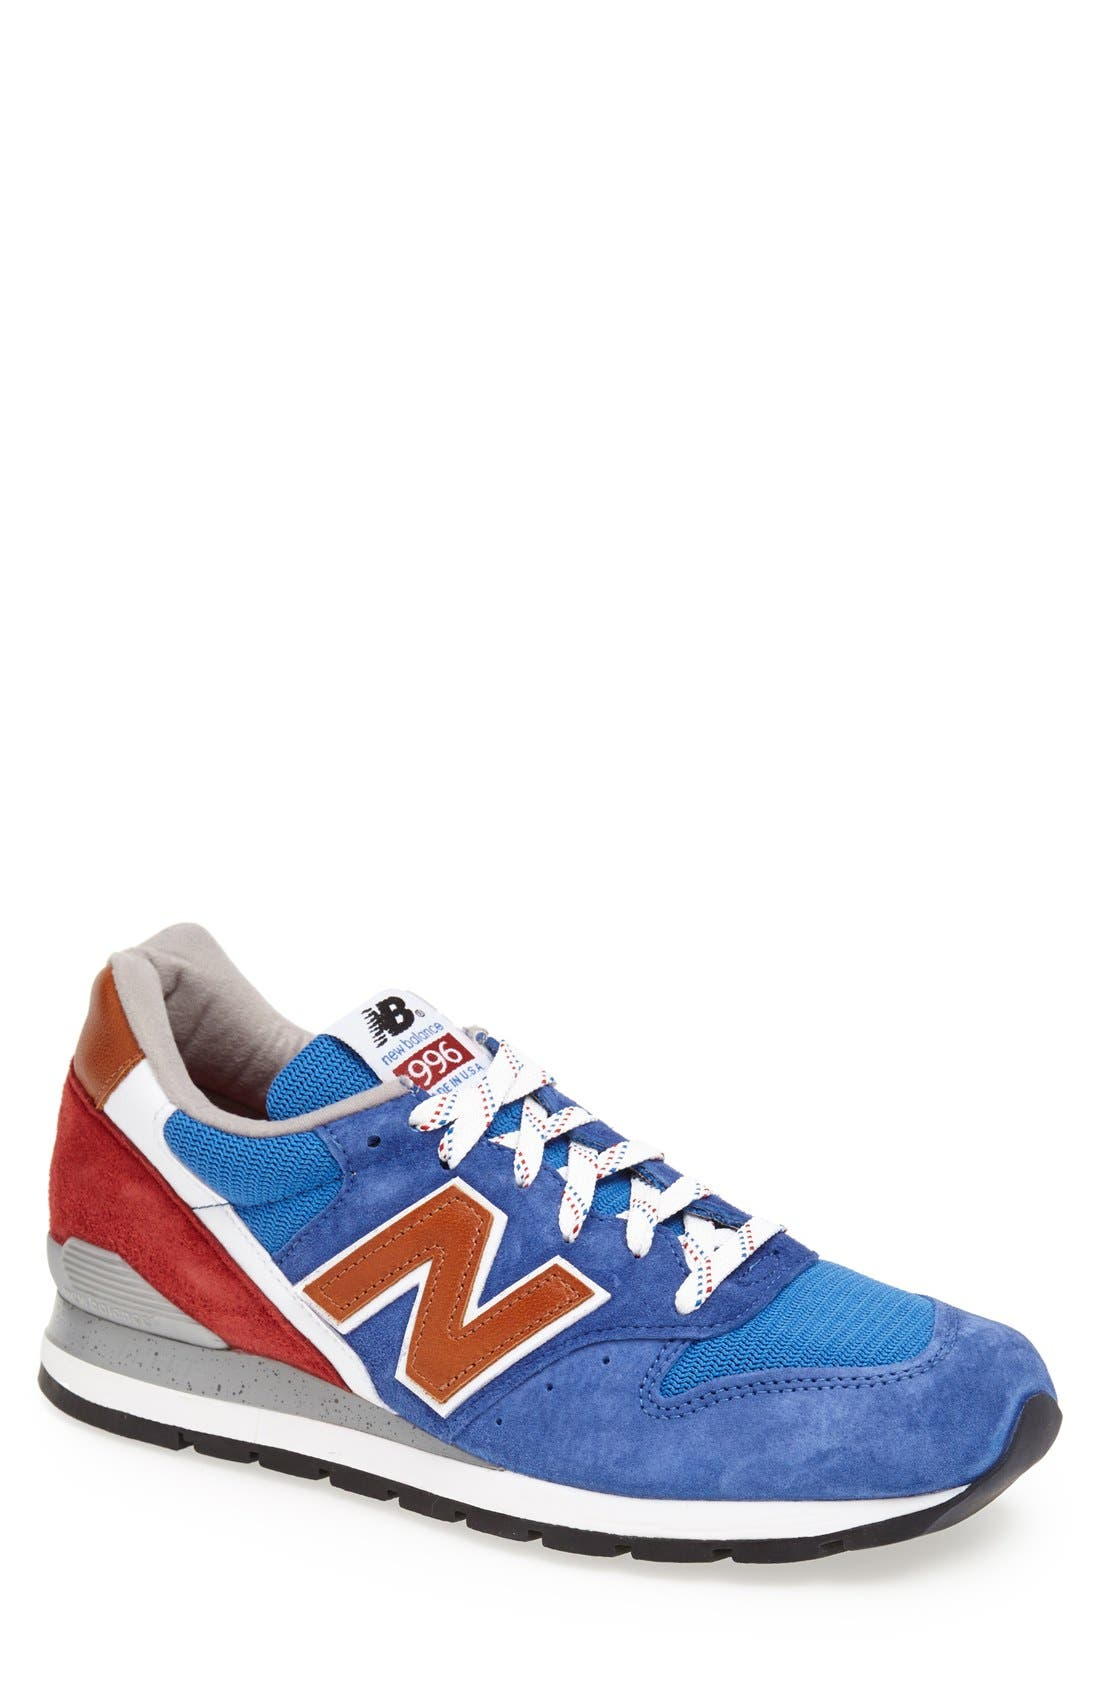 '996' Sneaker,                             Main thumbnail 1, color,                             Blue/Red